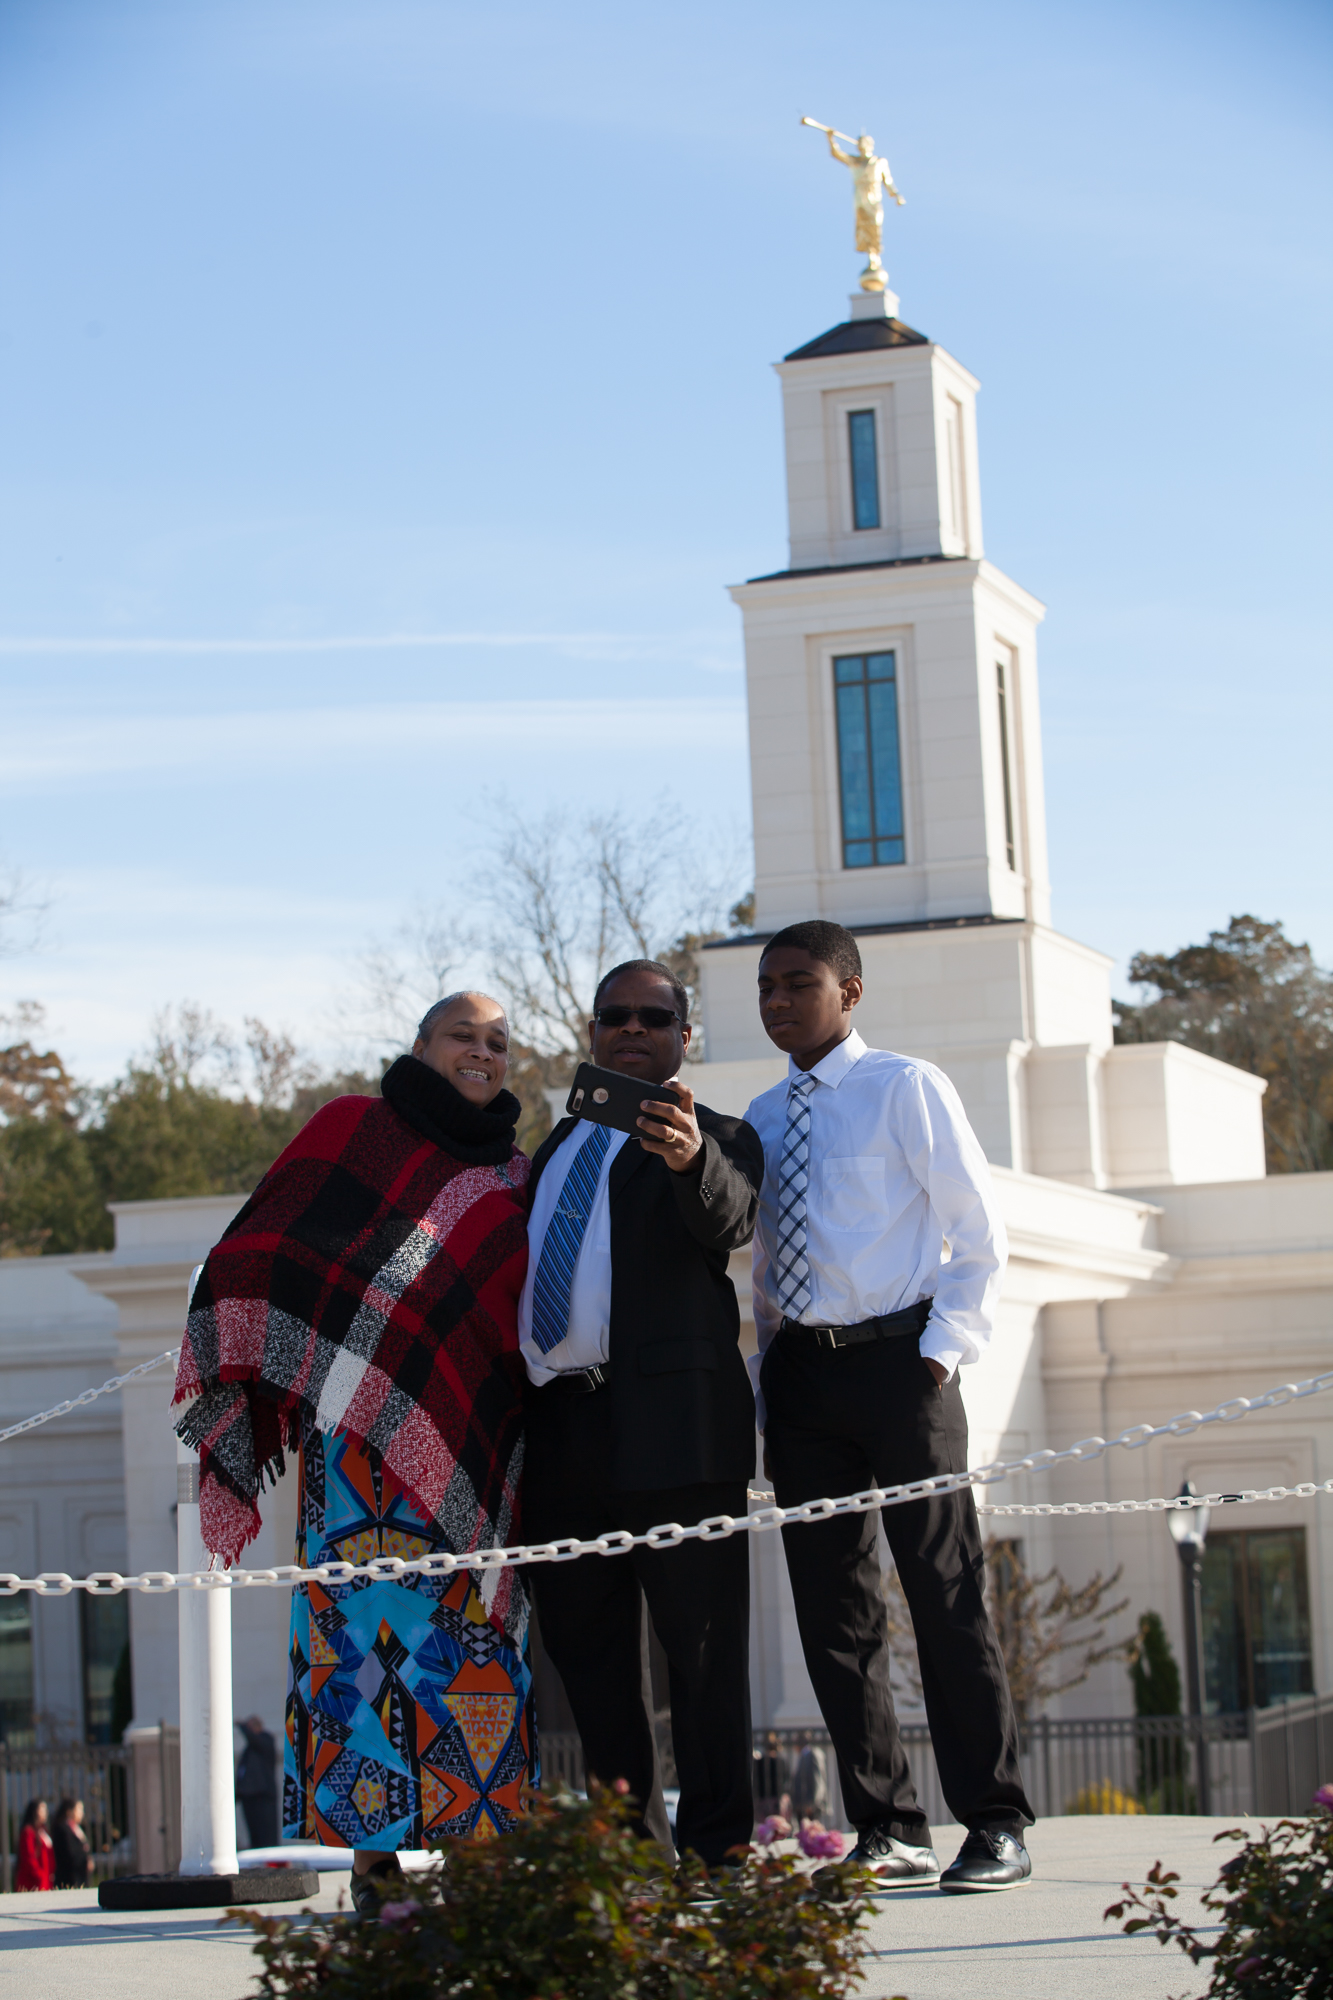 Attendees of the Baton Rouge Louisiana Temple rededication pose for photos outside the temple following its rededication on Sunday, Nov. 17, 2019.